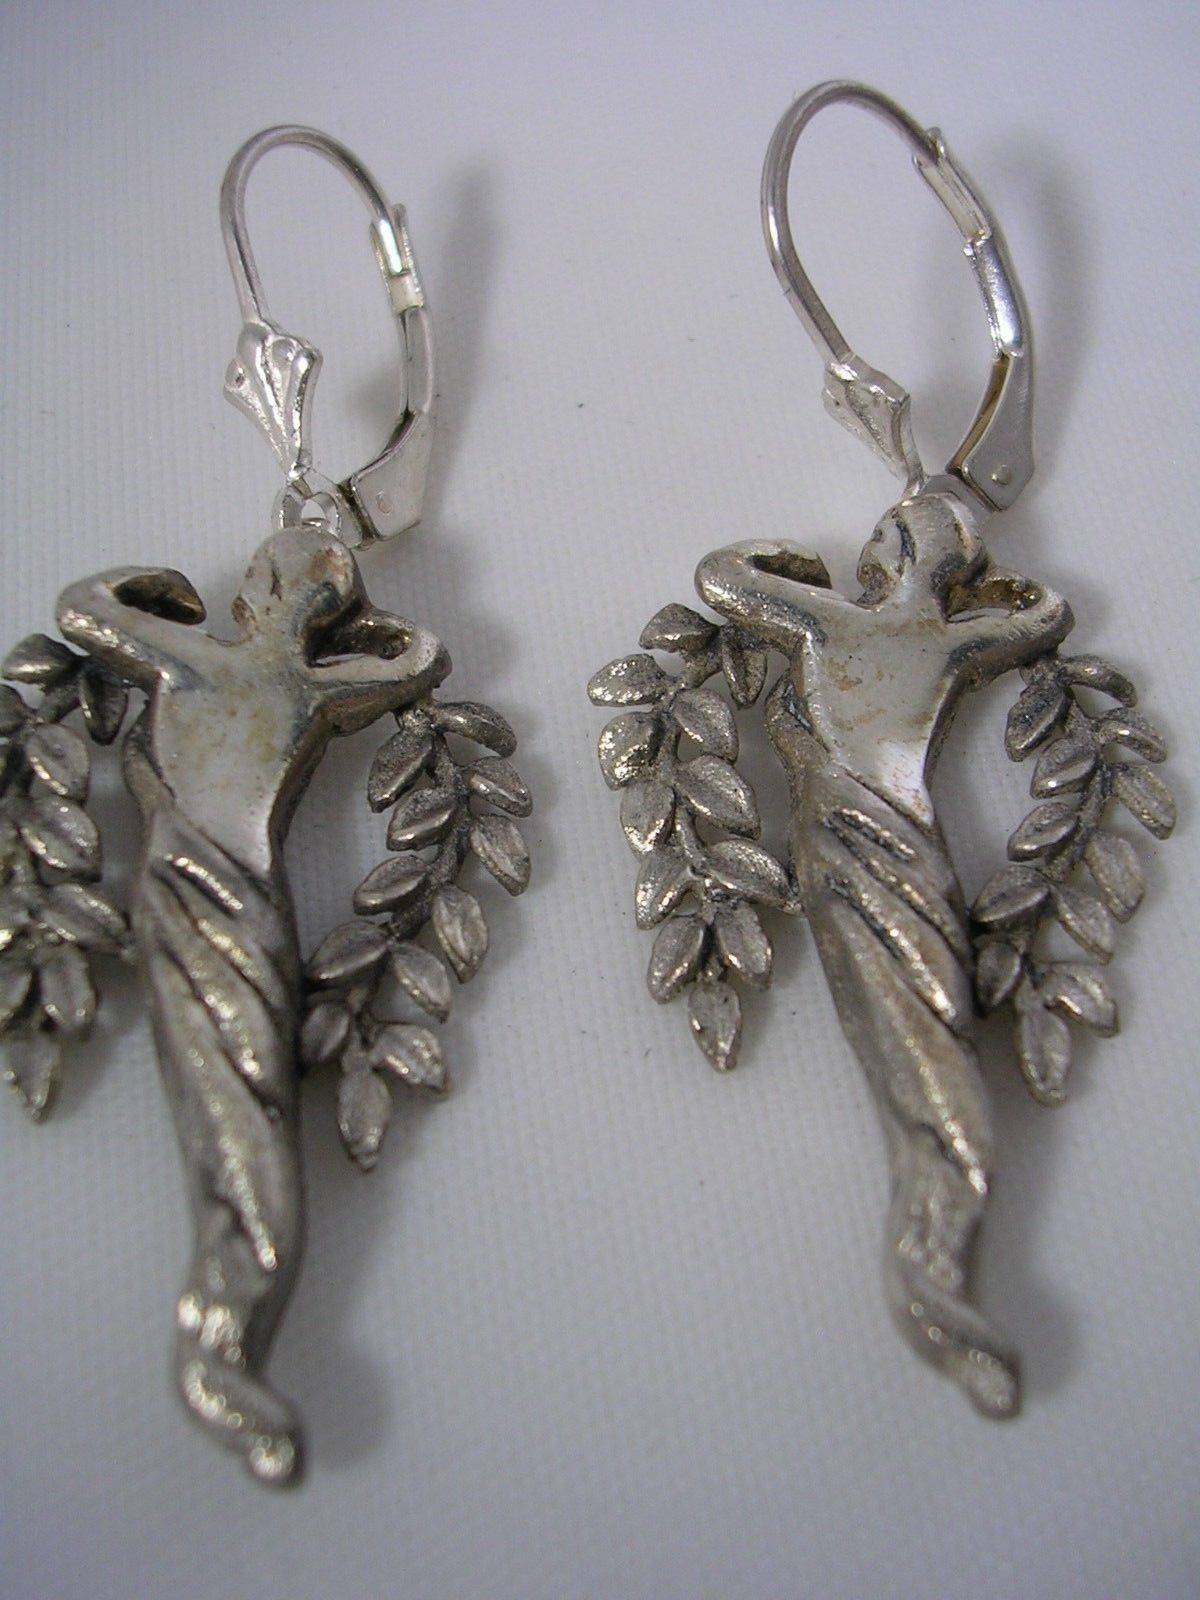 Primary image for LADY HANGING EARRINGS ART NOUVEAU IN STERLING SILVER